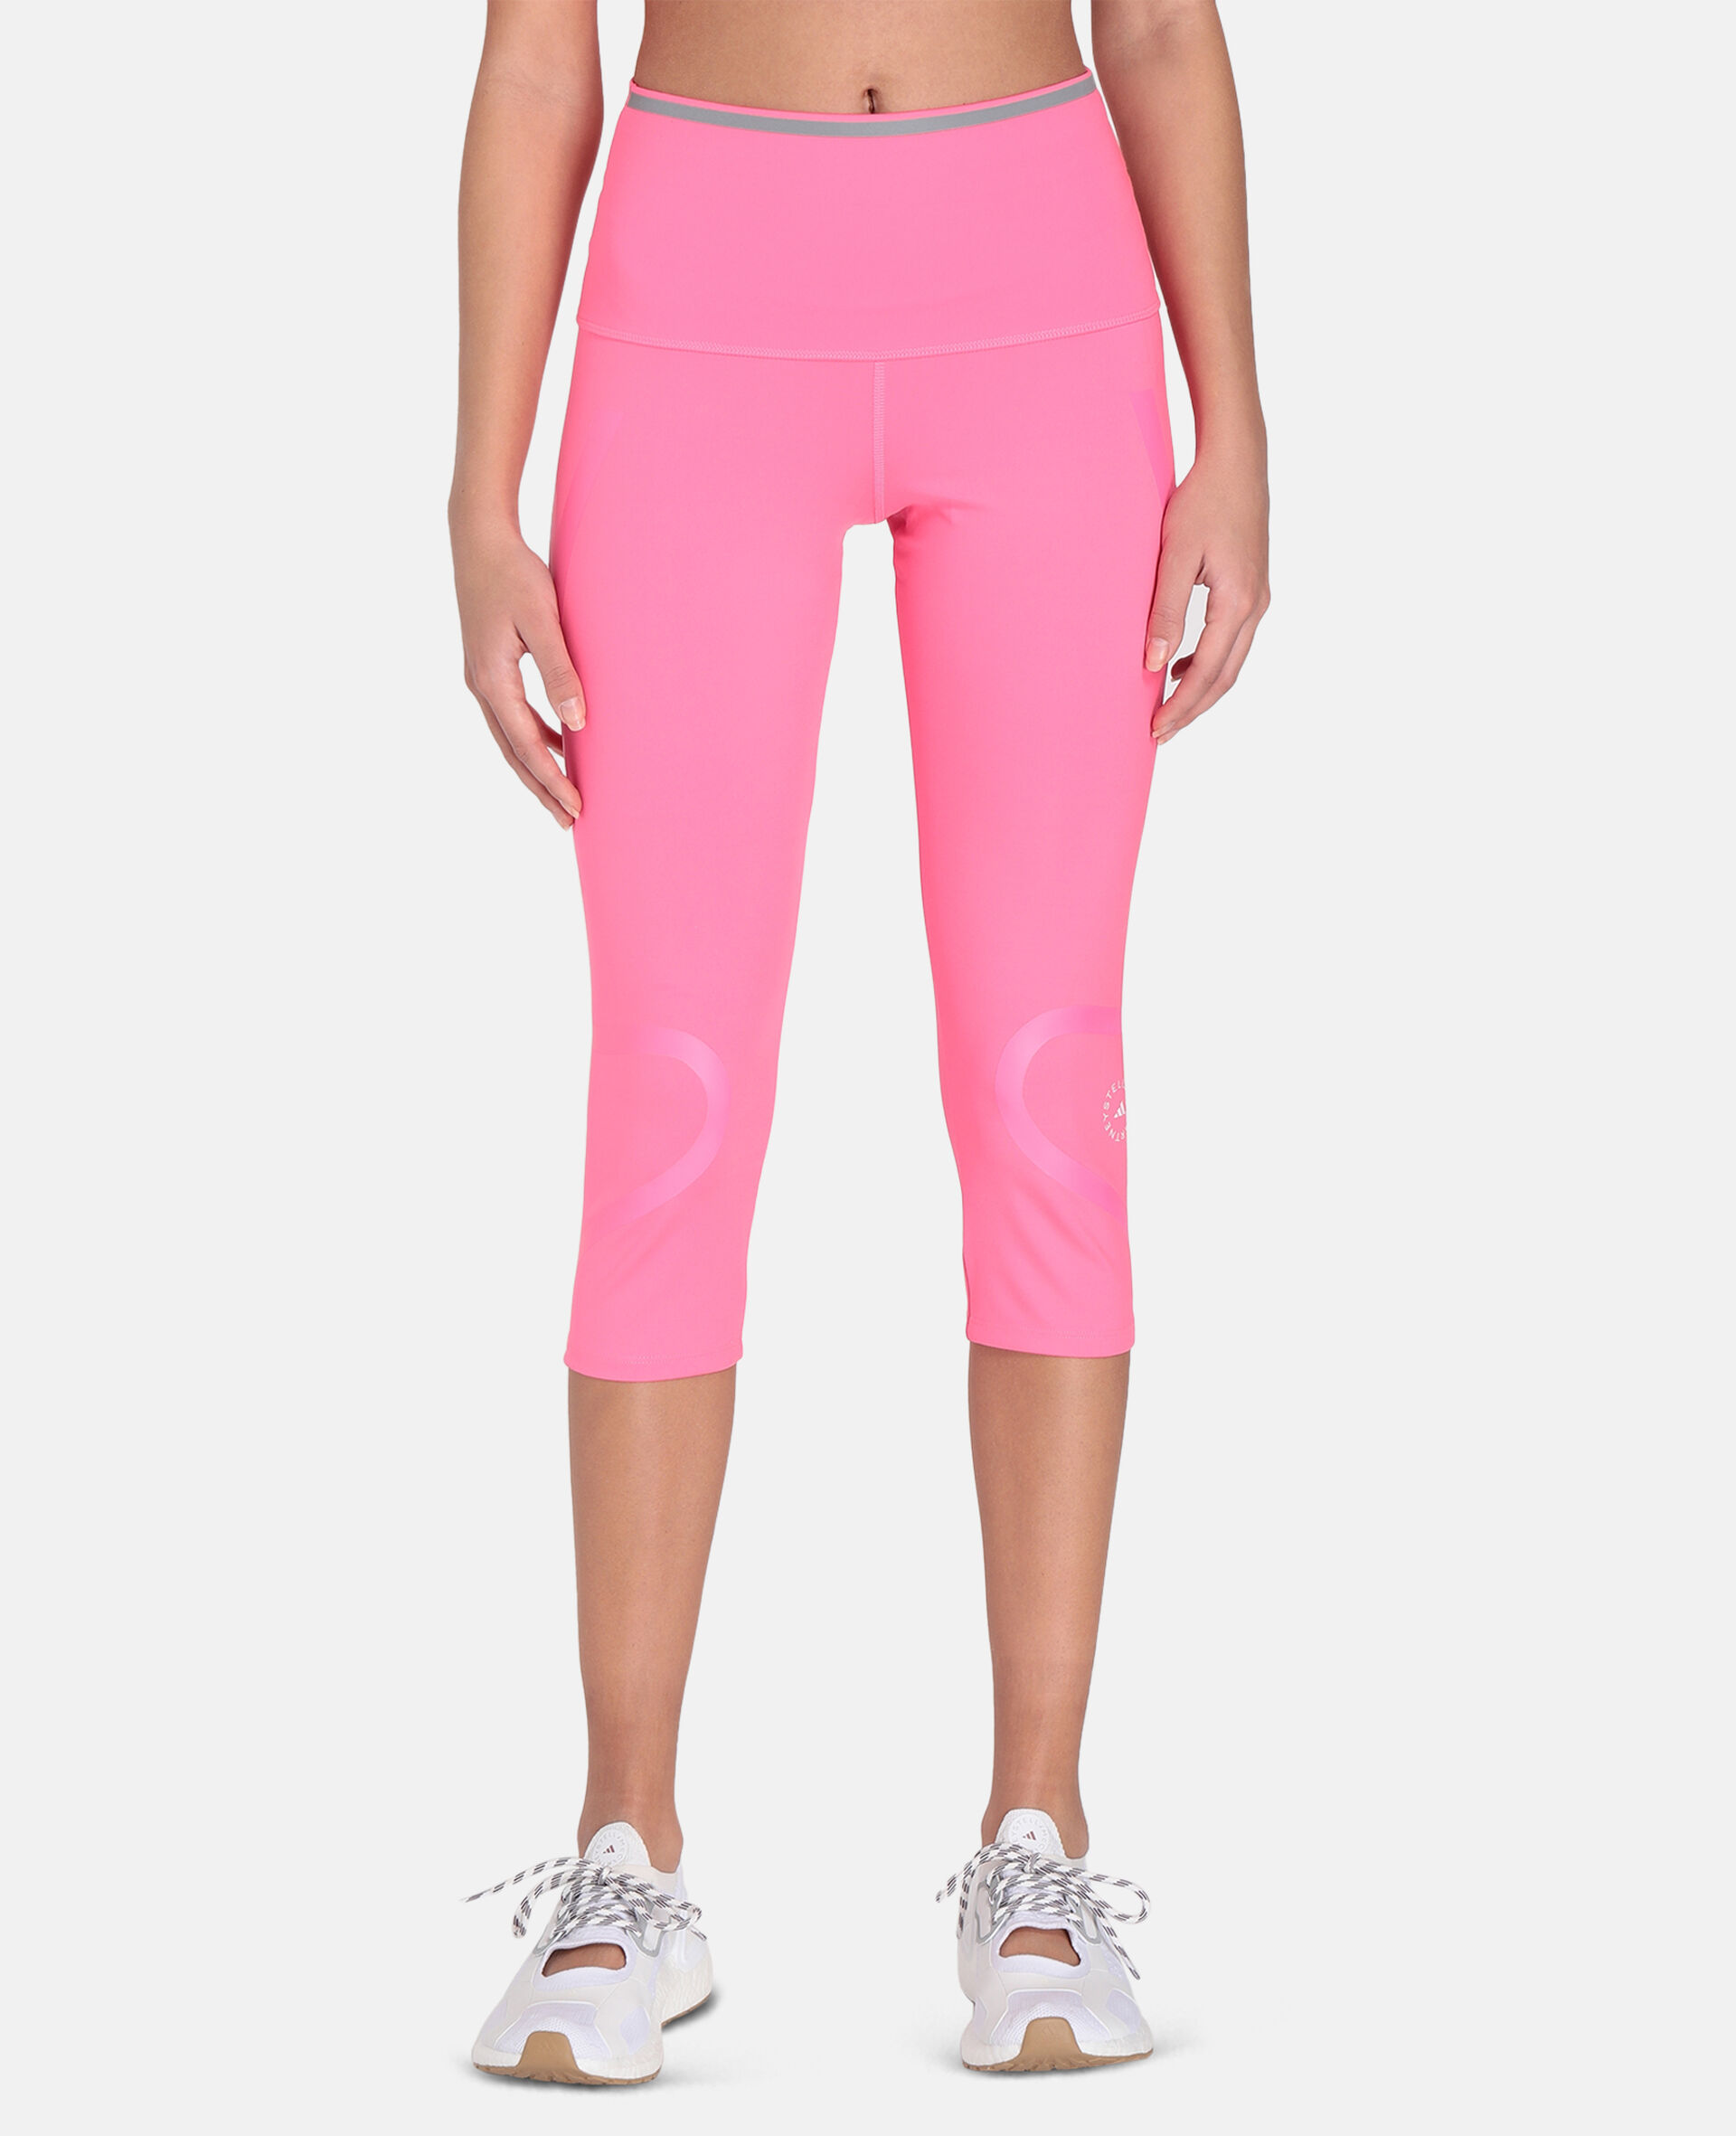 TruePace 3/4 Running Tights-Pink-large image number 4